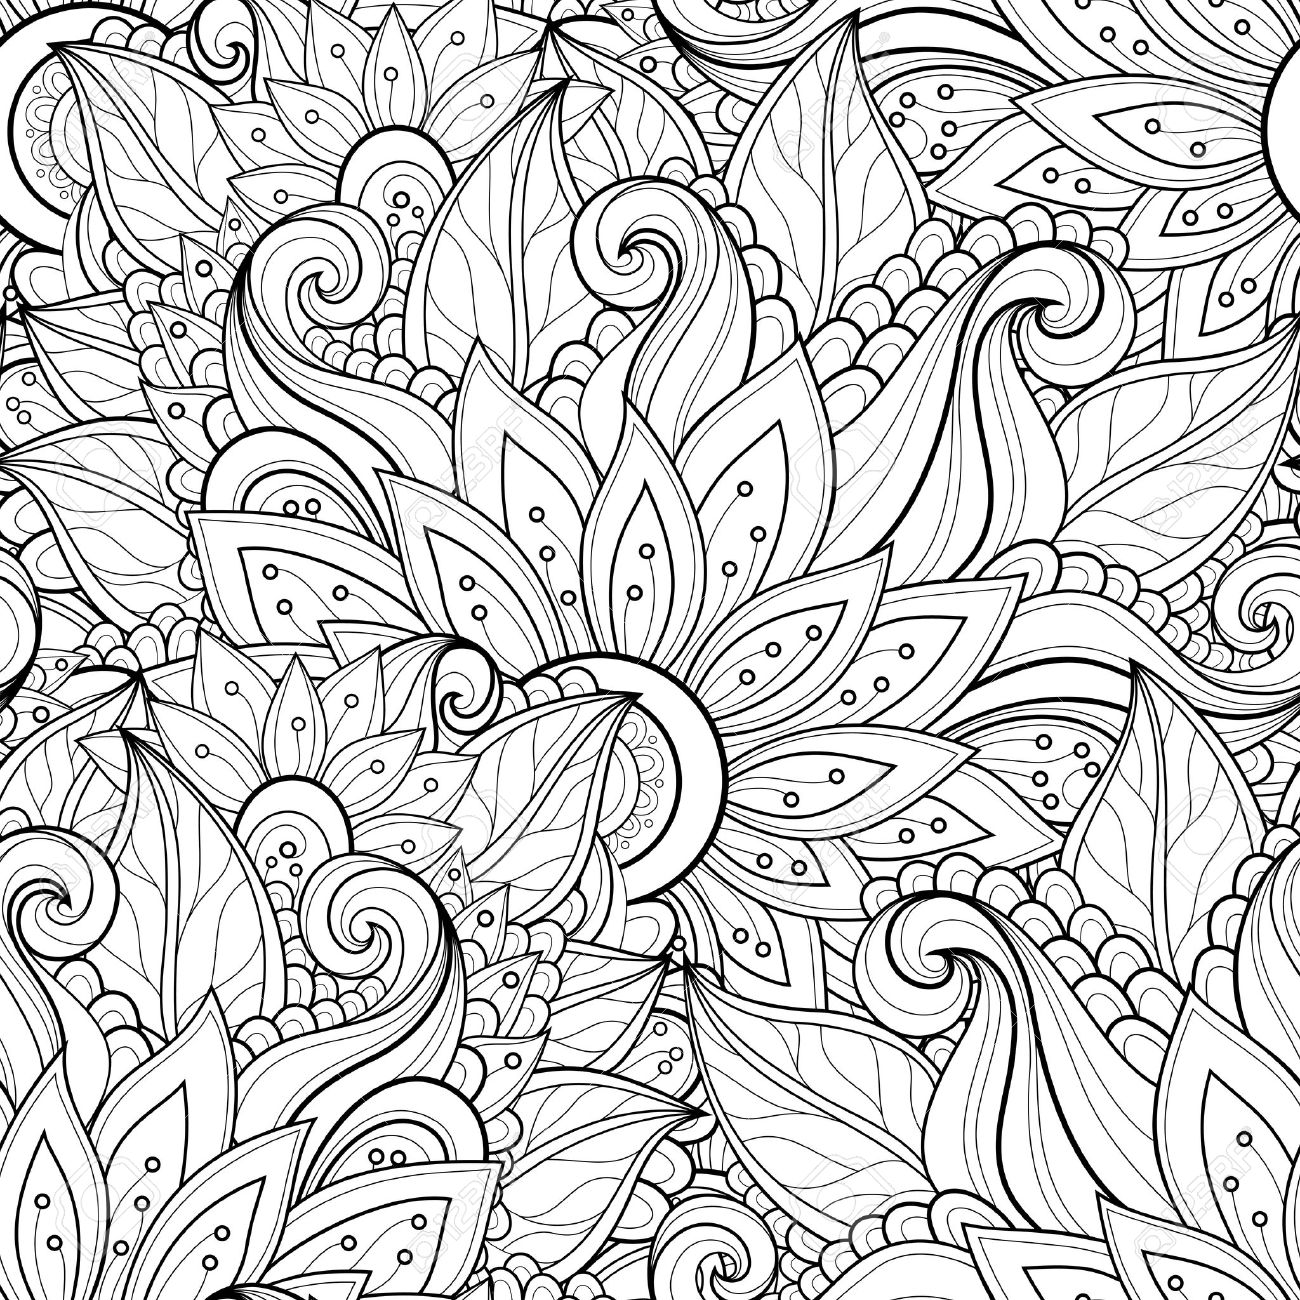 1300x1300 Vector Seamless Monochrome Floral Pattern. Hand Drawn Floral